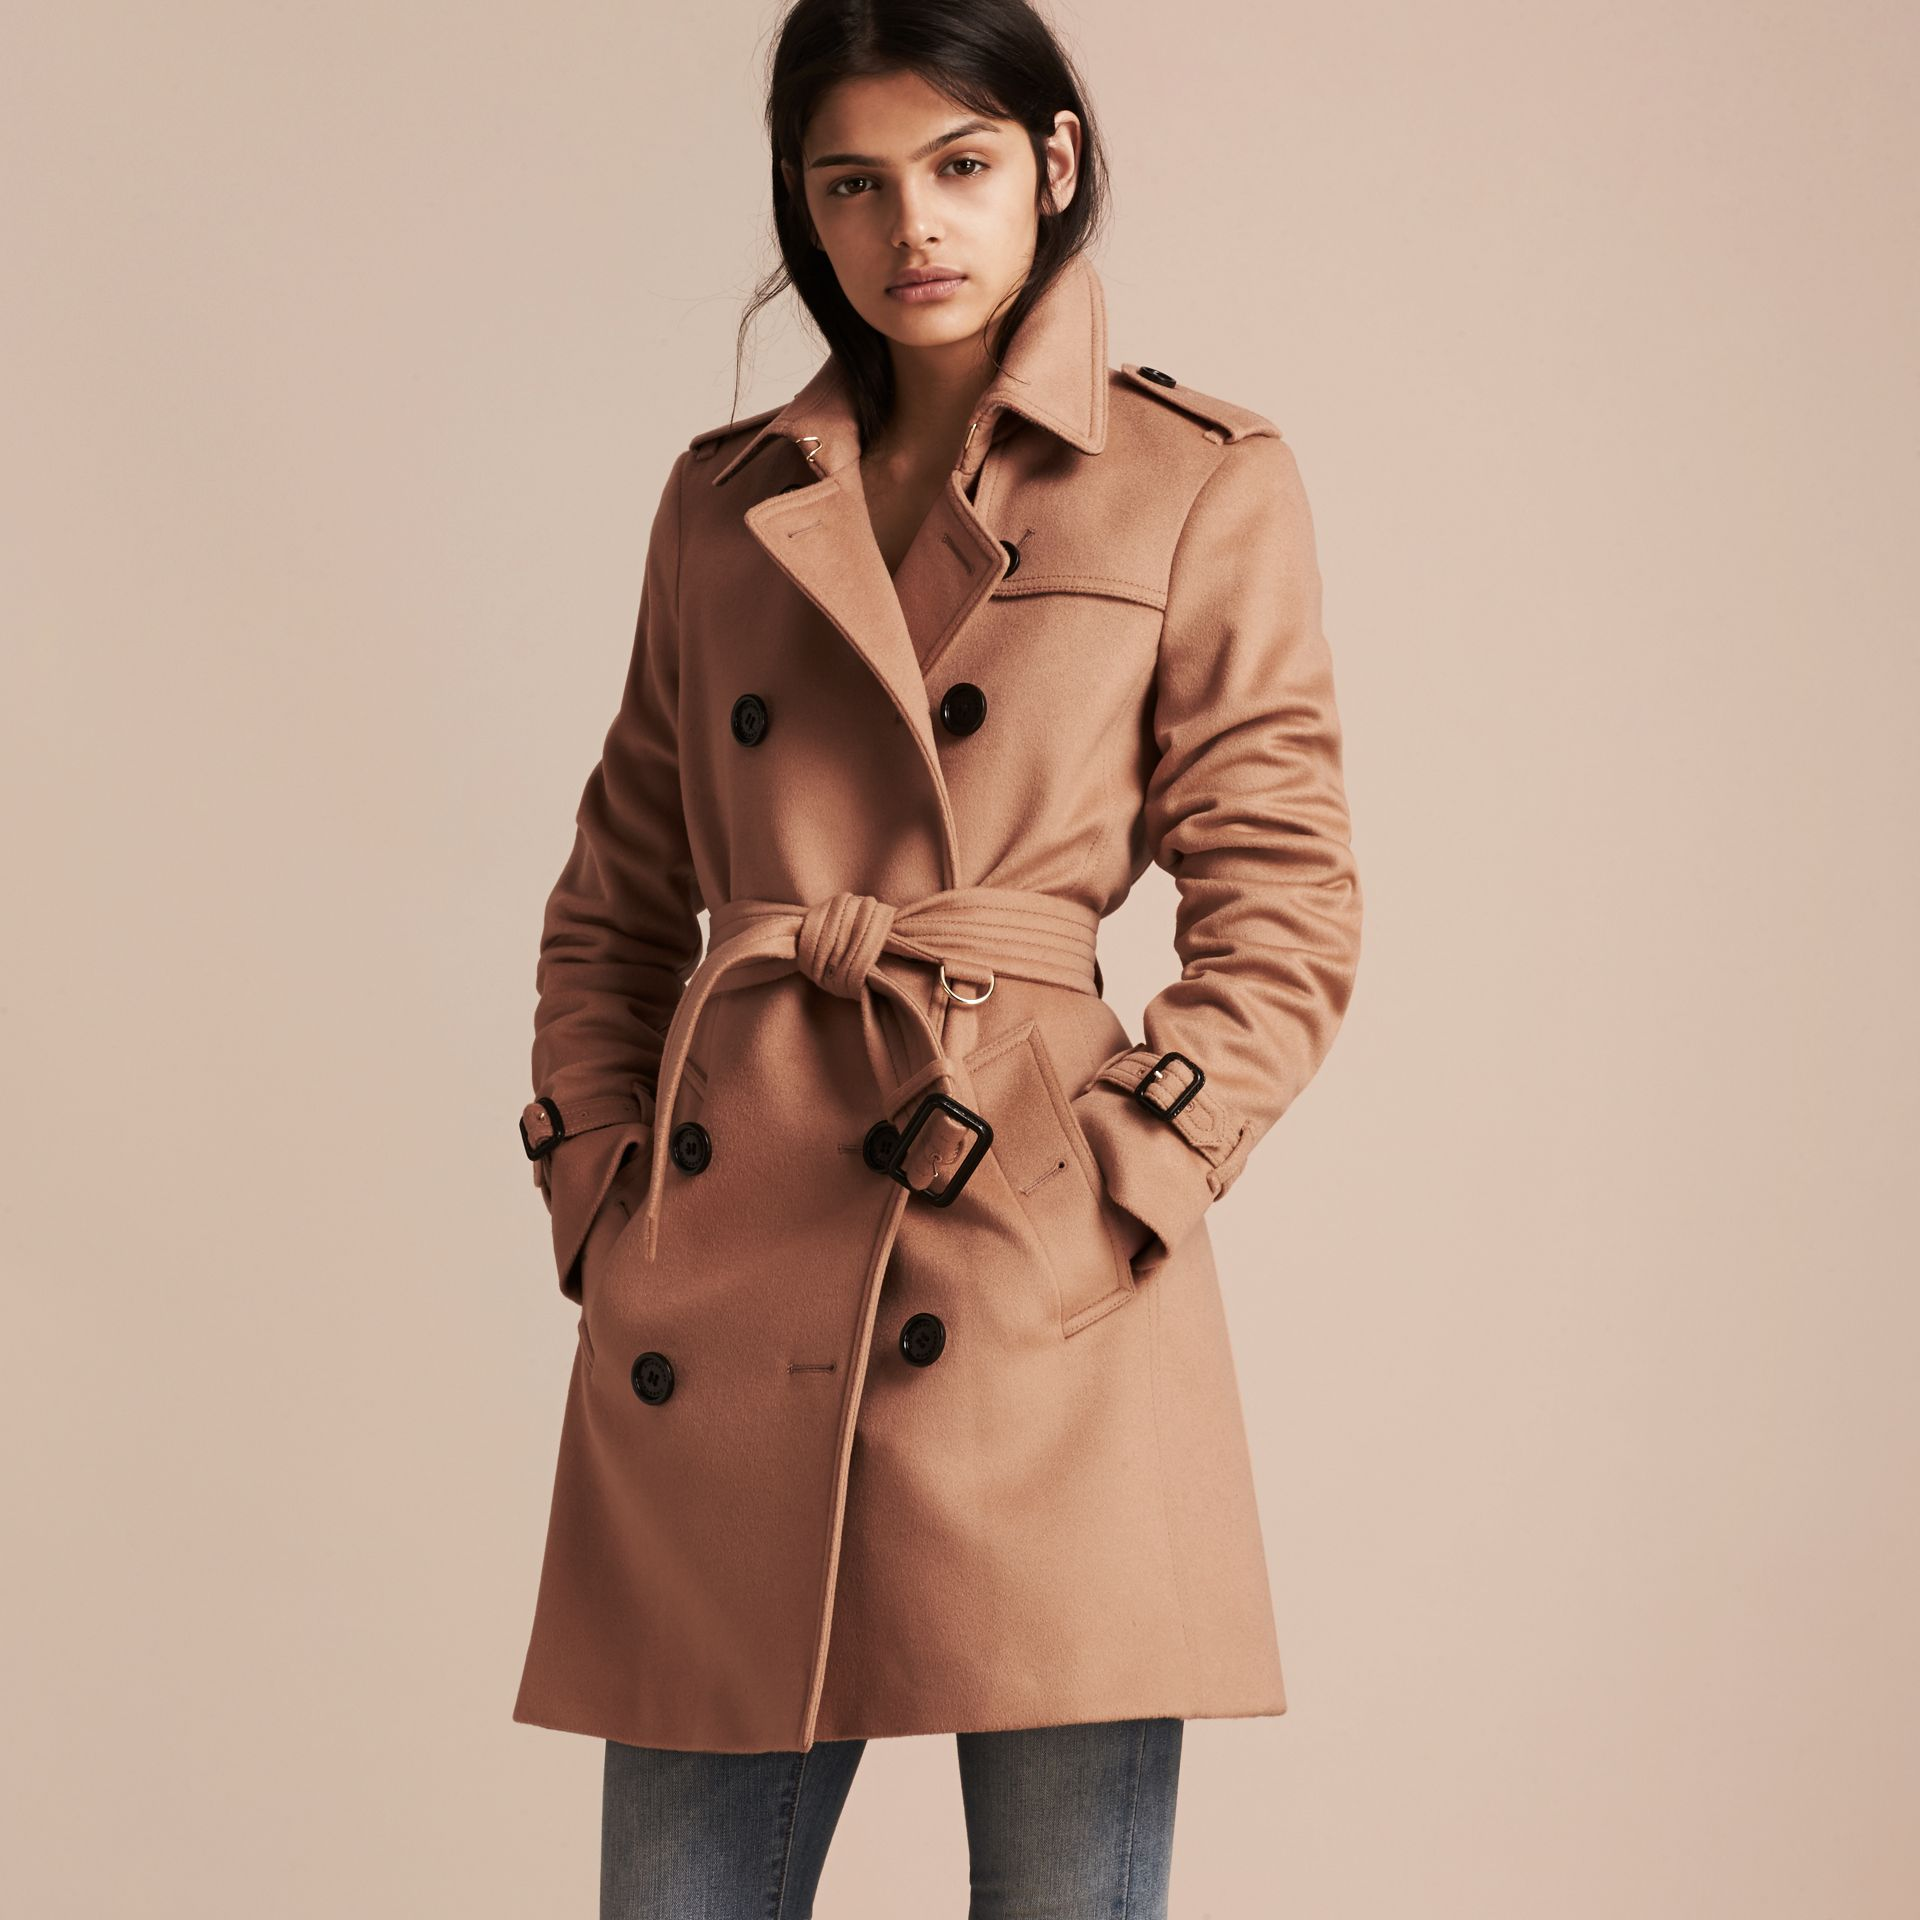 Wool Cashmere Trench Coat in Camel - Women | Burberry Canada - gallery image 1